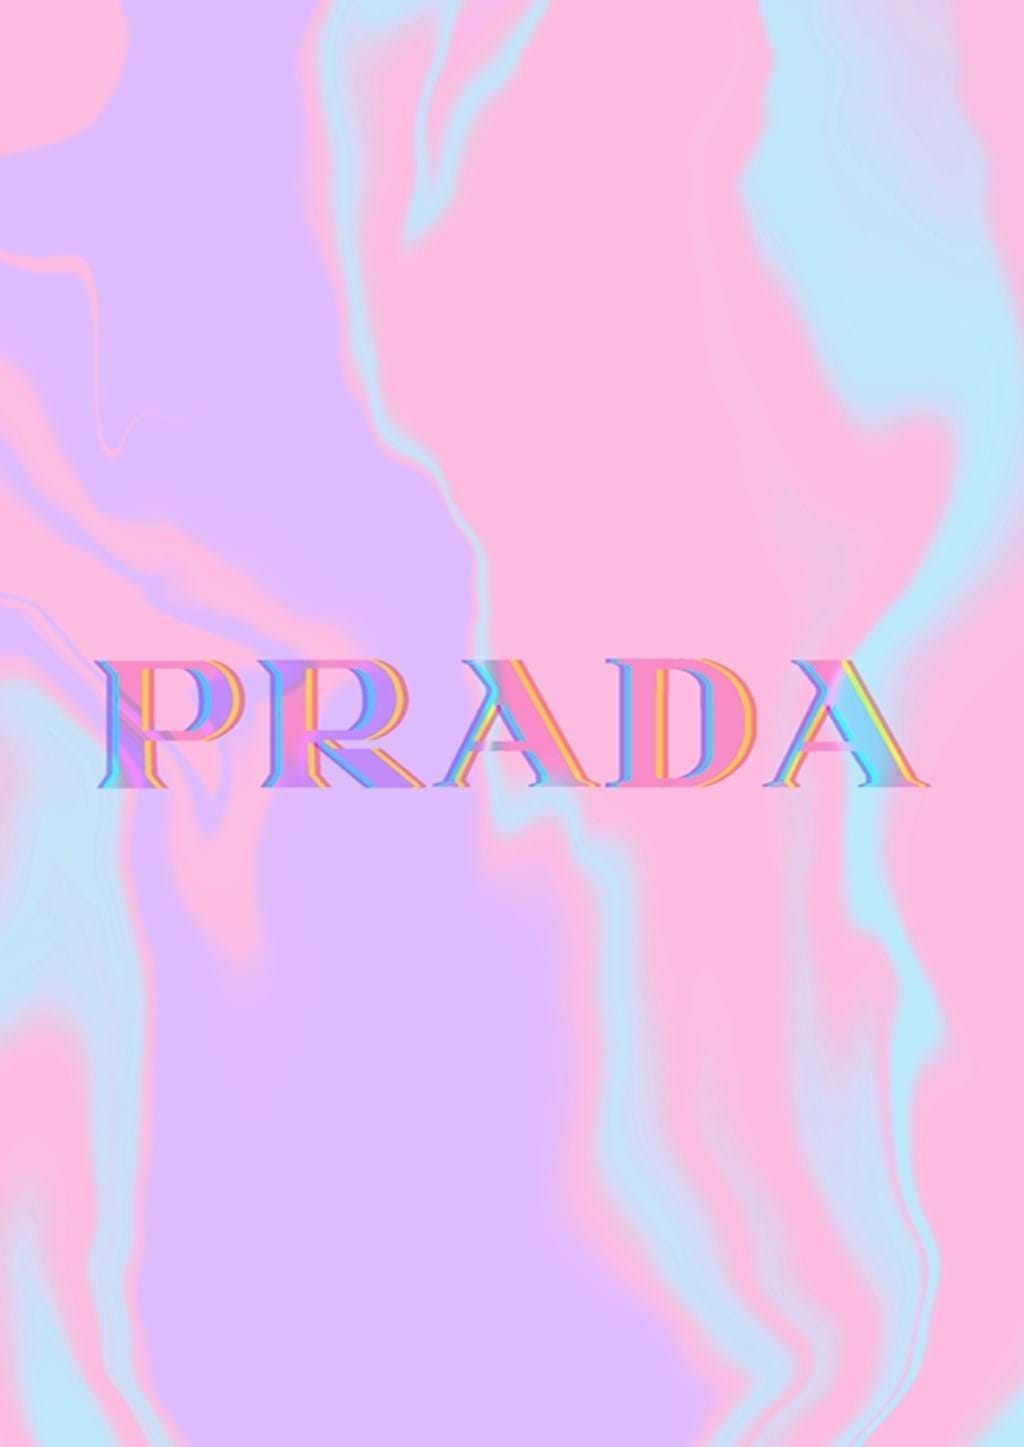 Poster: PRADA Glitch - Digital